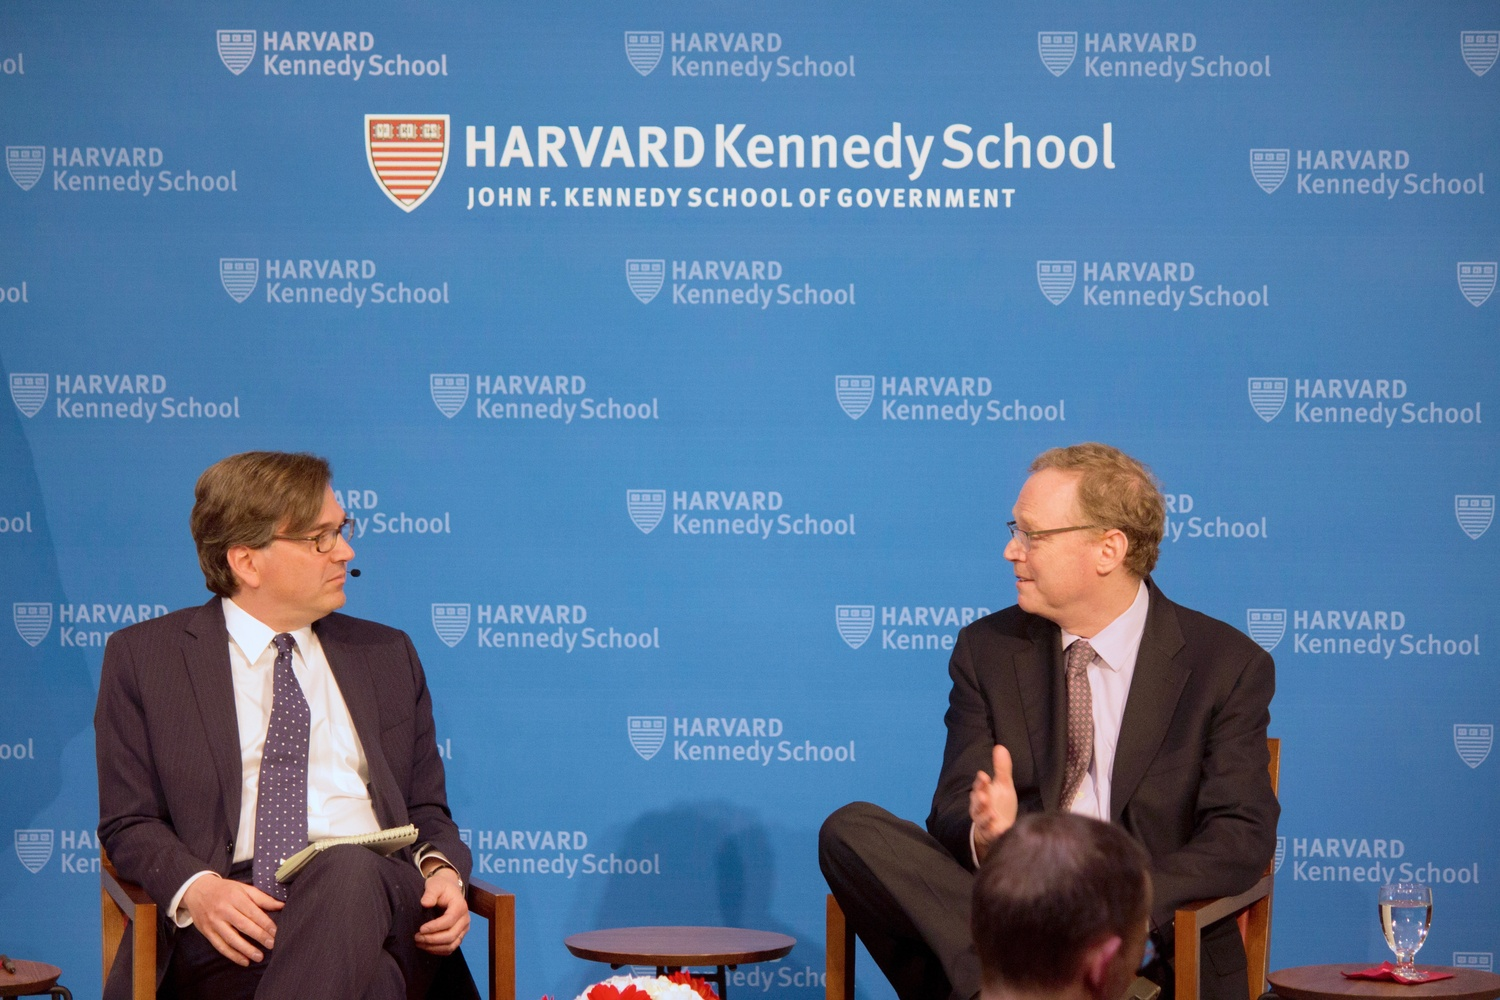 Kevin Hassett, the current Chairman of the White House Council of Economic Advisers, spoke at the JFK Jr. Forum Thursday evening.